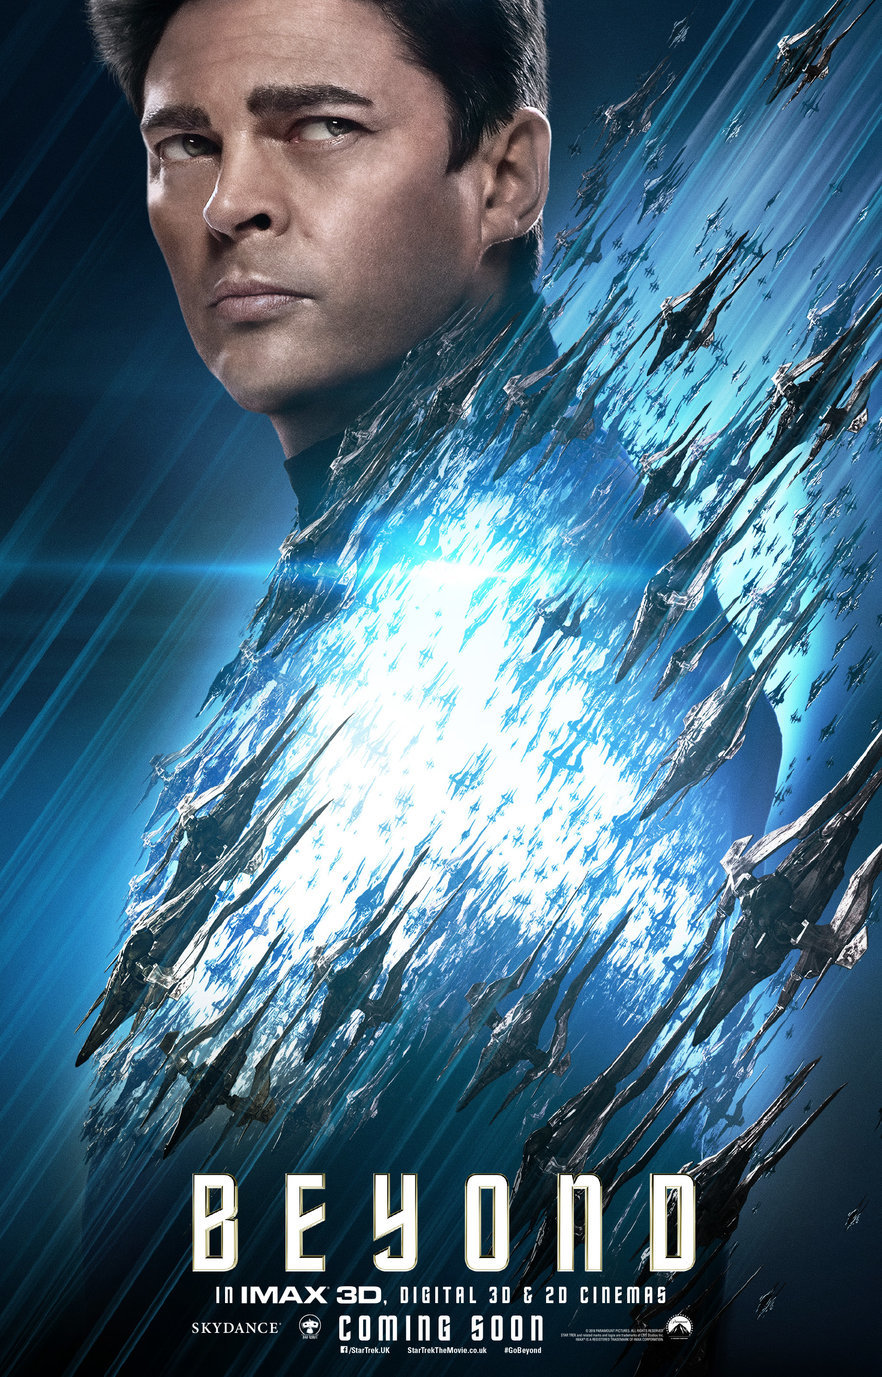 rsz_11rsz_star_trek_beyond_character_1_sheet_uk_bones